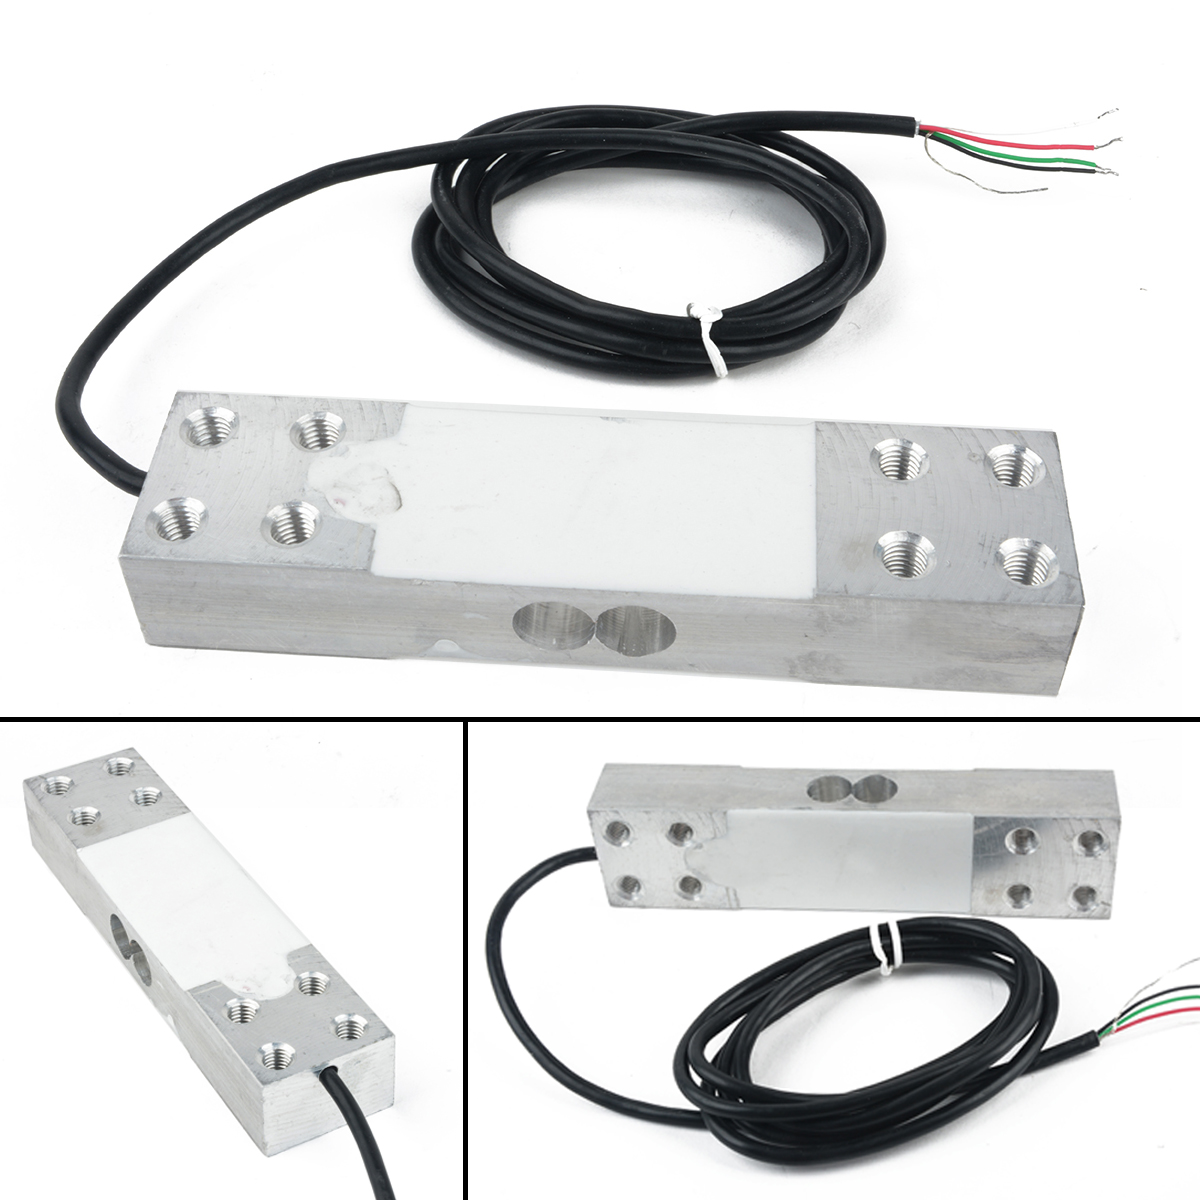 1pc Portable Electronic Balance Platform Scale Load Cell Weight Weighing Sensor 200kg 5V-12VDC Mayitr Precision Tool Parts pressure sensor output amplifier 0 10v 4 20ma transmitter rw st01a weighing force measurement balance load cell amplifier